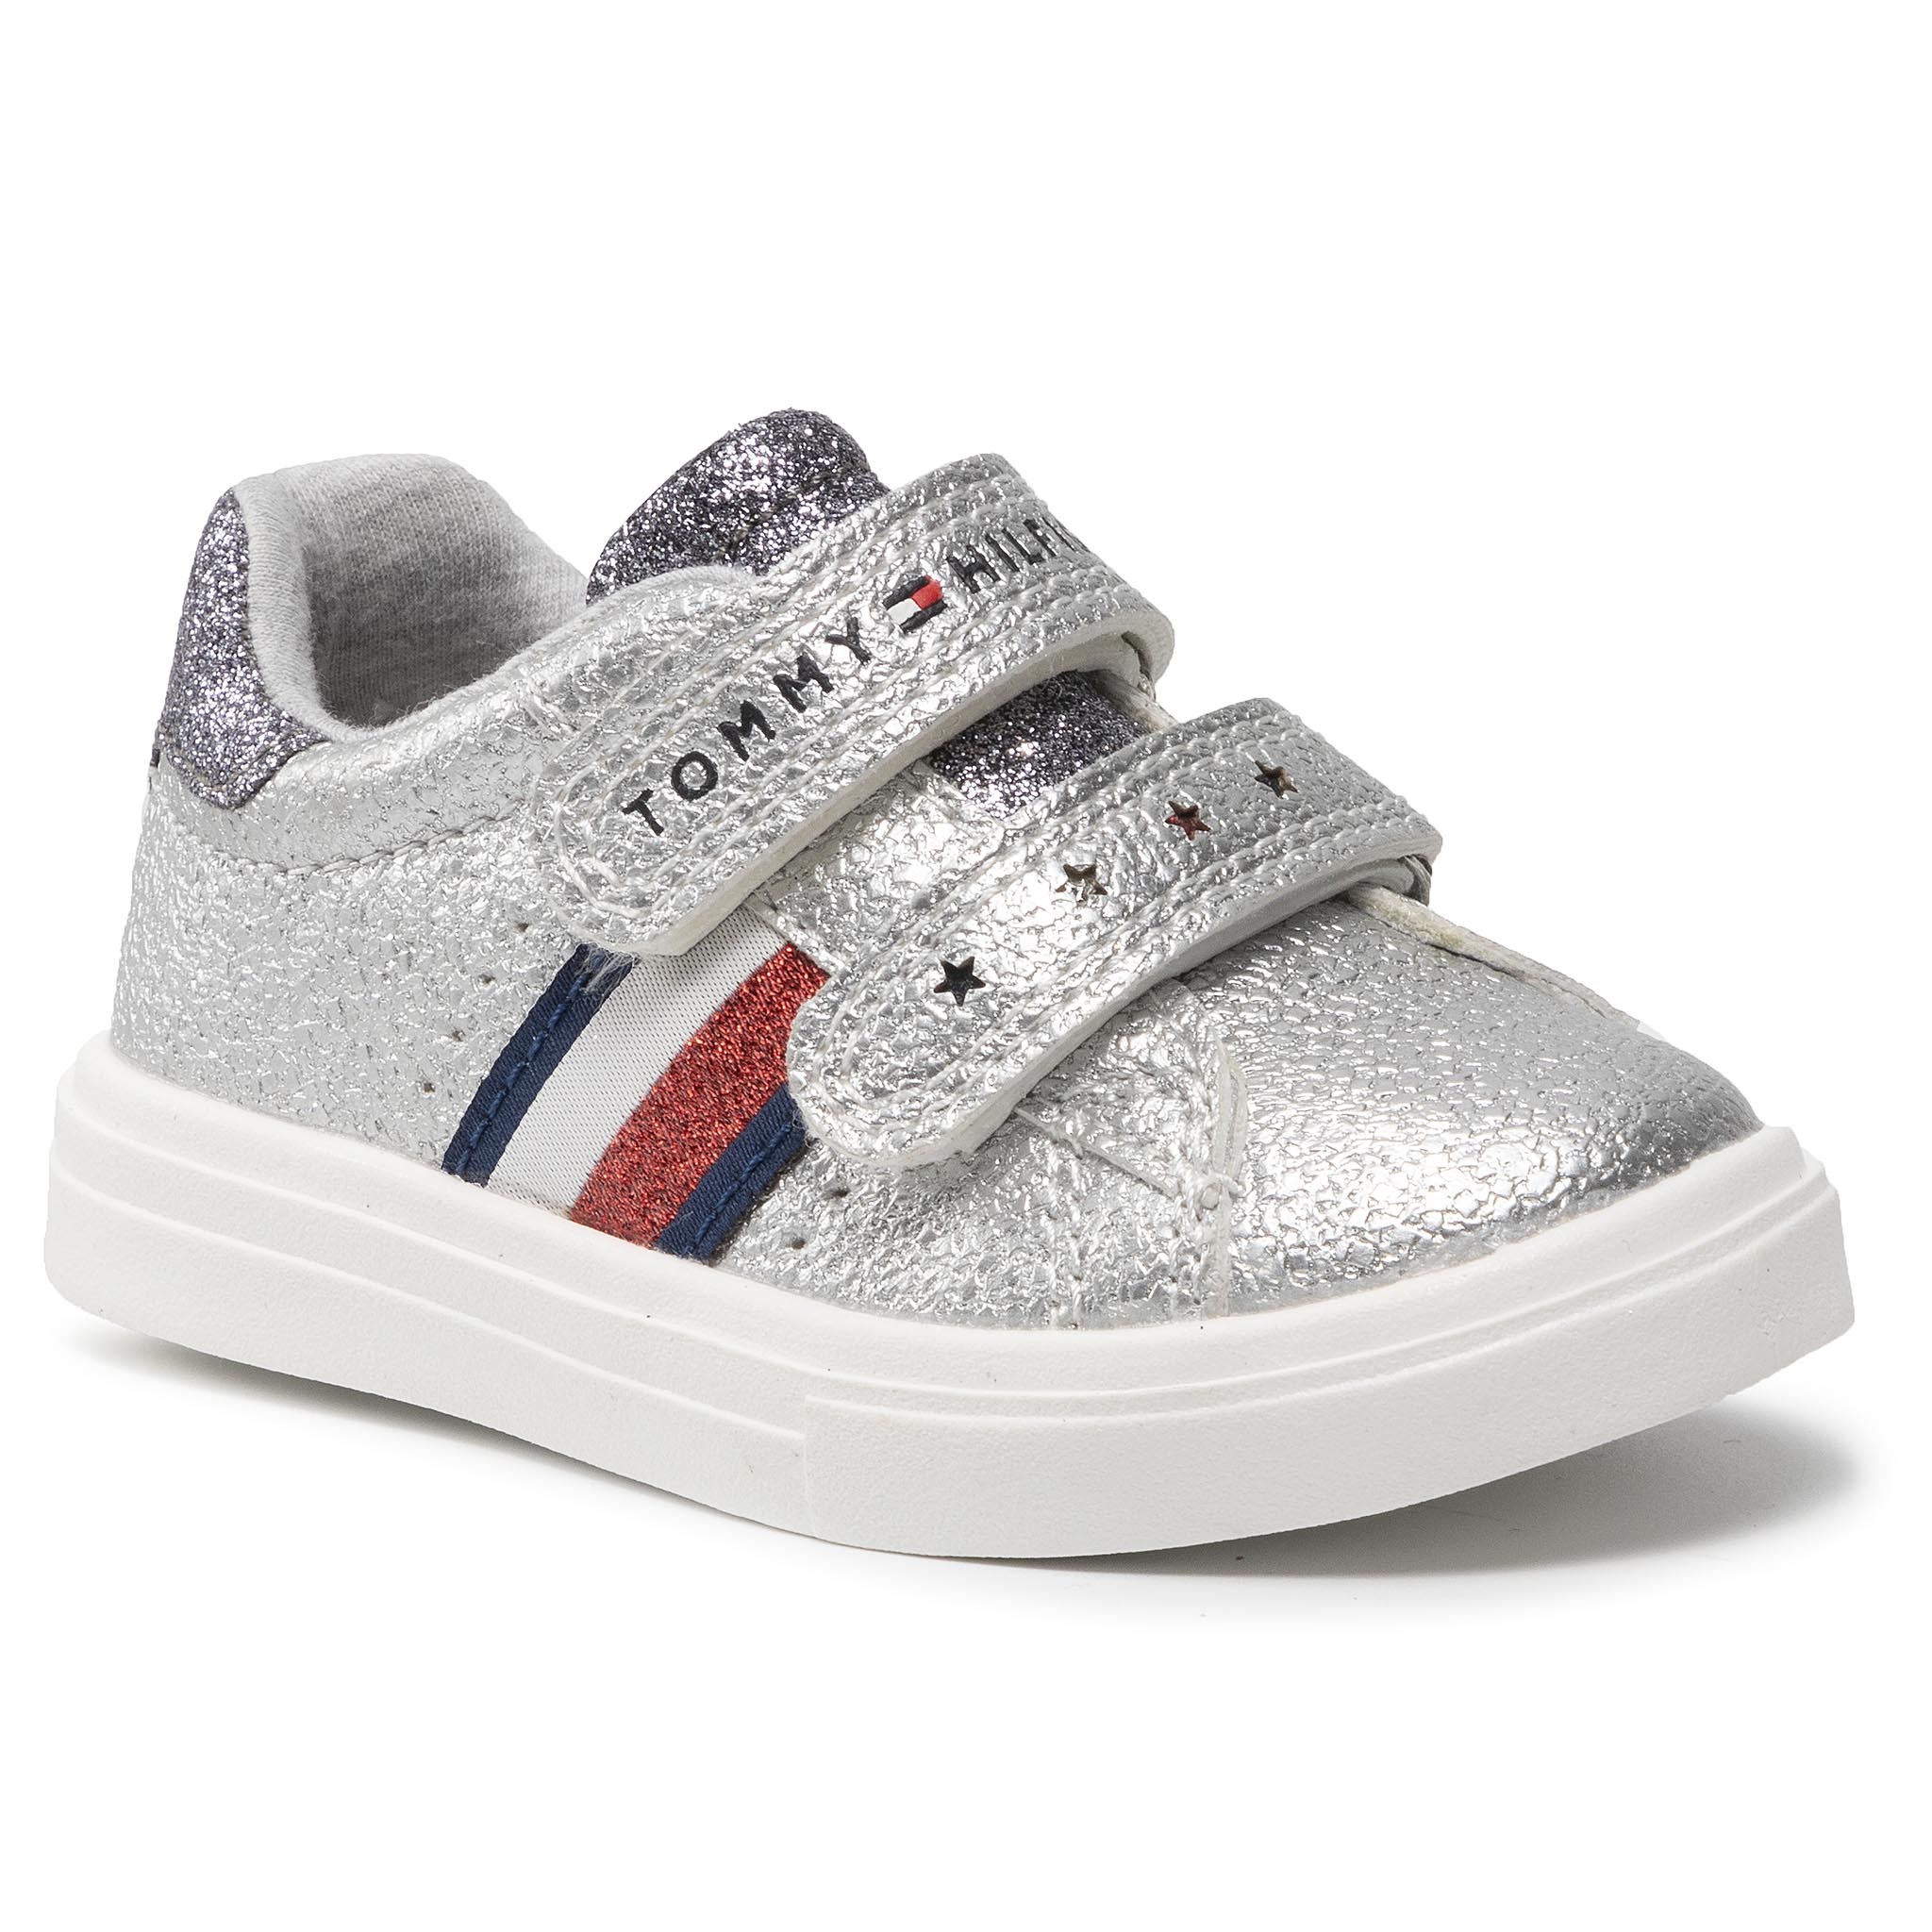 Sneakers TOMMY HILFIGER - Low Cut Velcro Sneaker T1A4-31012-0621939 M Laminated Silver